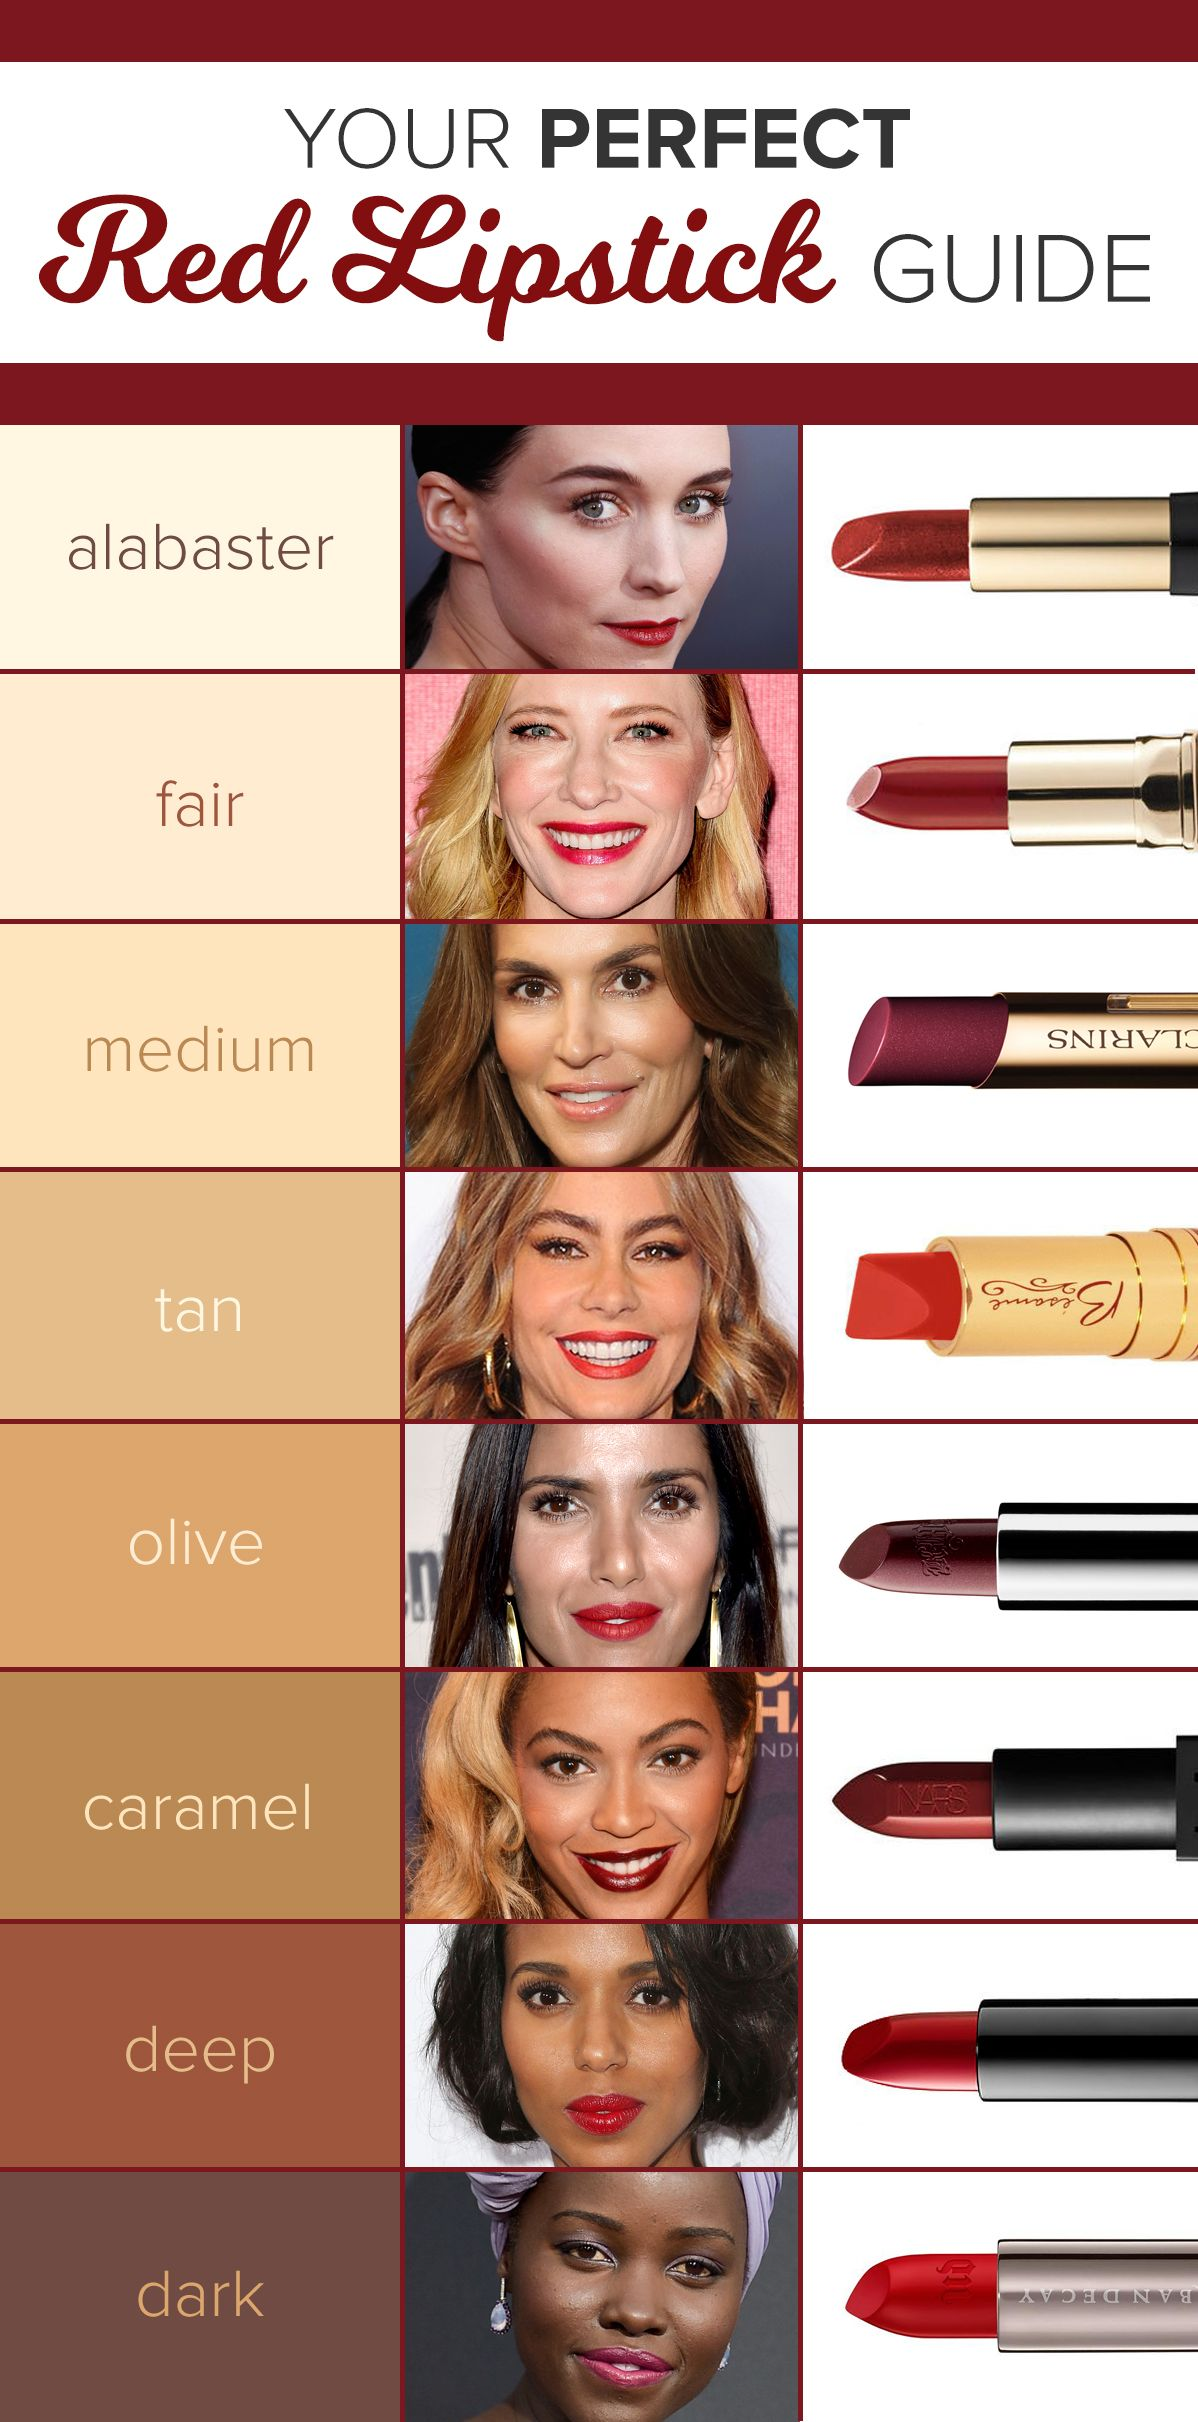 The Best Red Lipsticks For Every Skin Tone According To A